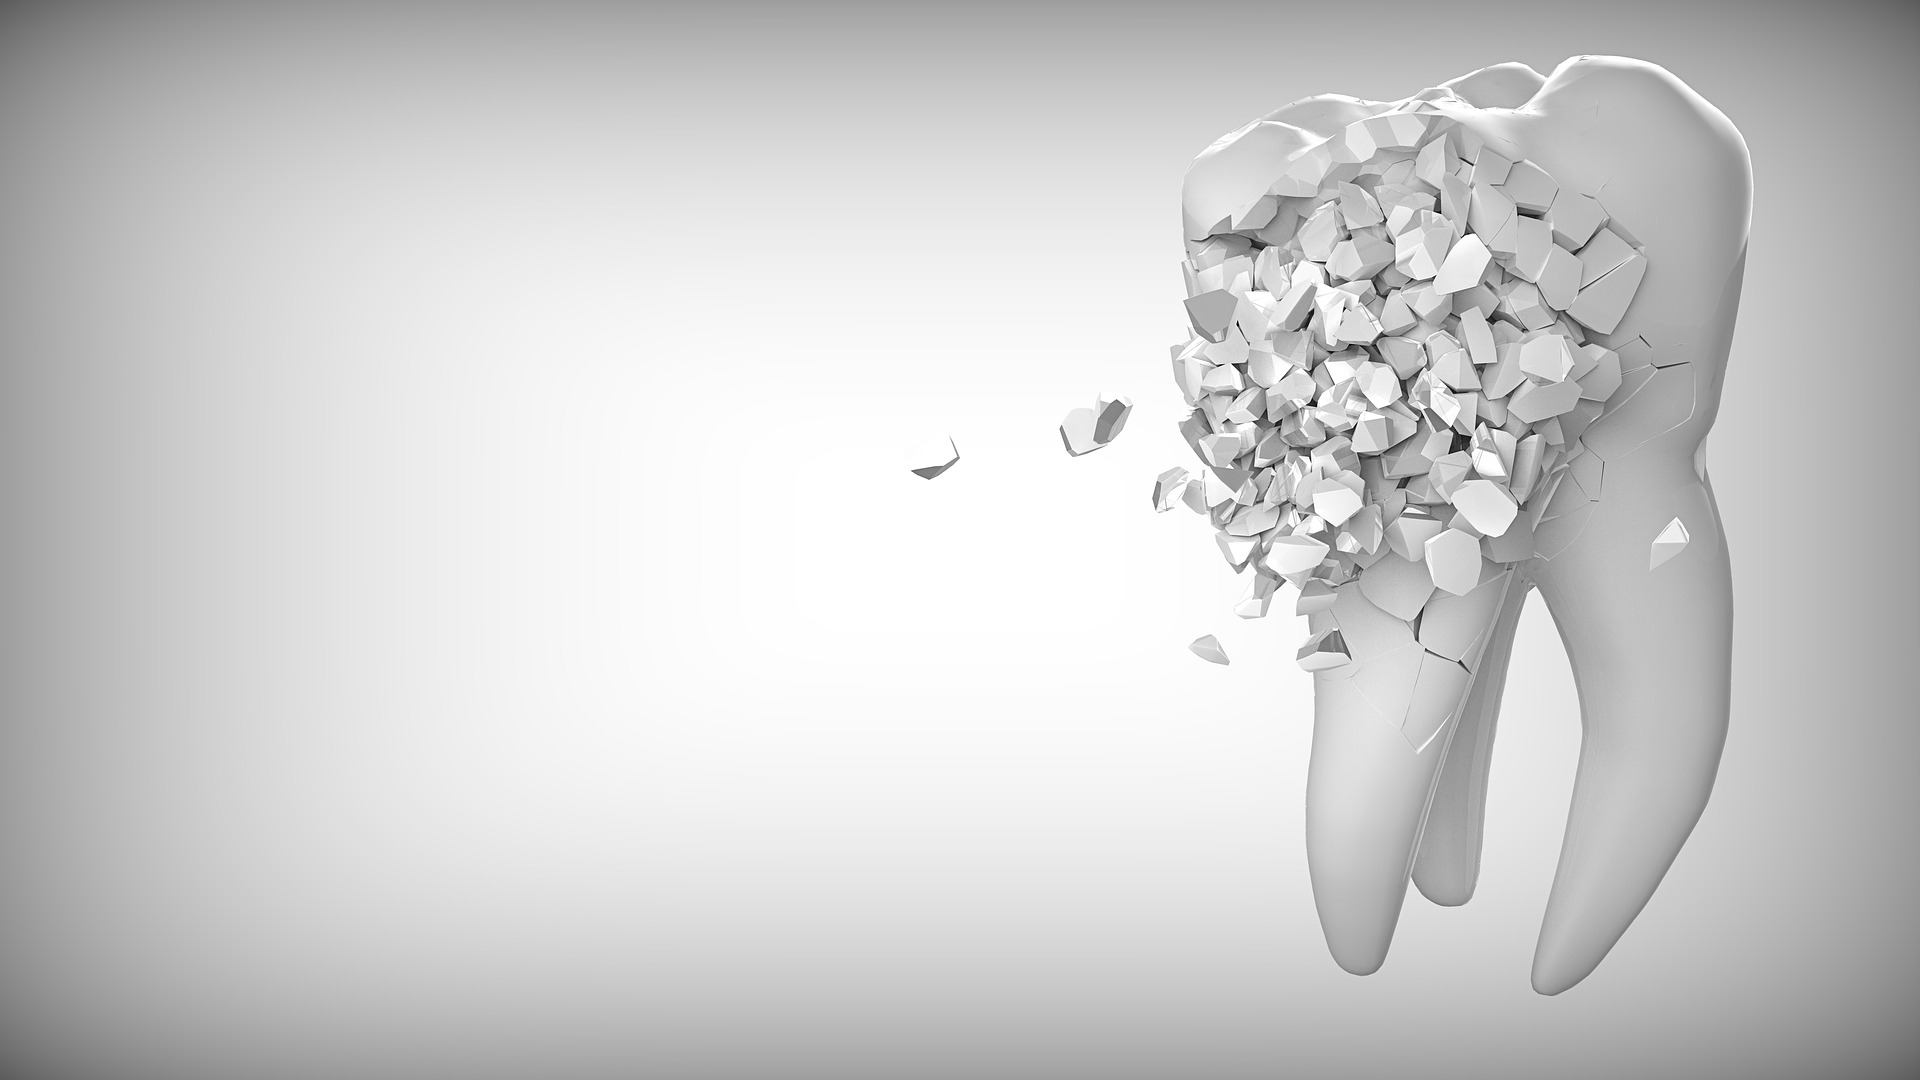 Treating Bruxism in Prescott - creative visualization of a portion of a tooth breaking into several pieces